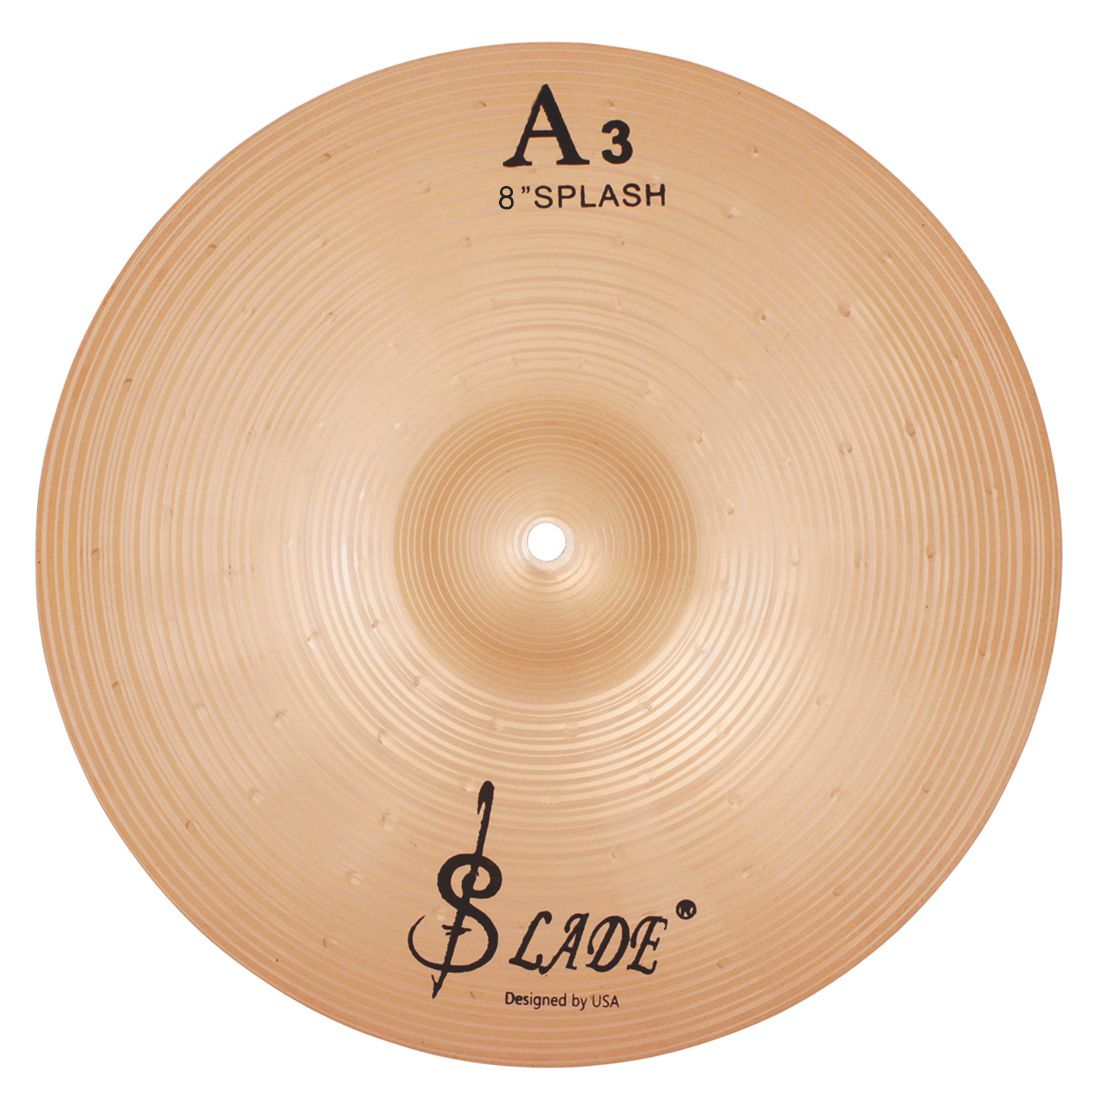 SLADE Copper Alloy Crash Cymbal Drum Set Durable Brass Alloy Cymbal For Percussion Instruments Players Beginners